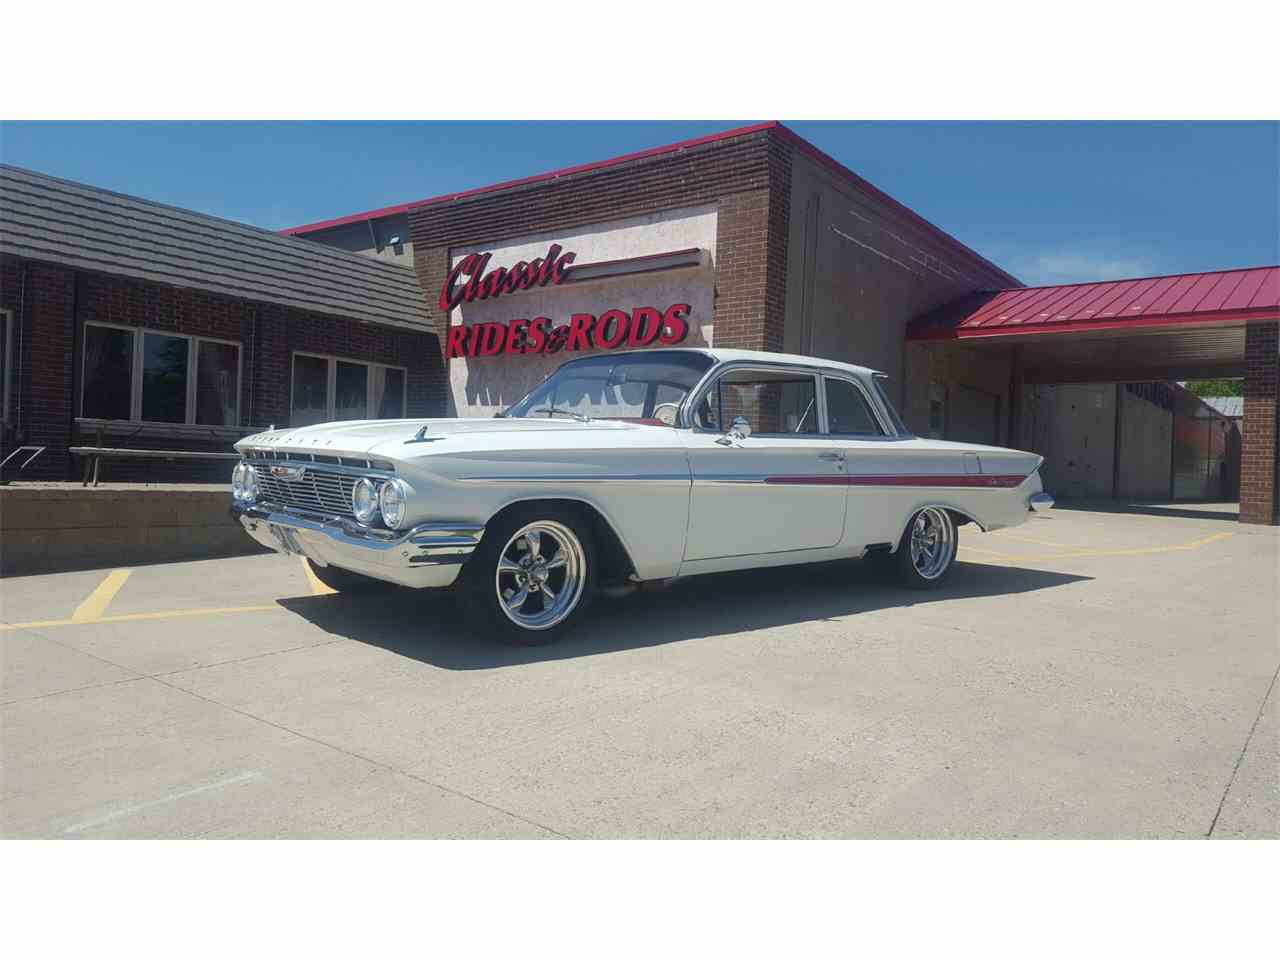 Large Picture of Classic '61 Bel Air located in Annandale Minnesota - $32,900.00 Offered by Classic Rides and Rods - L7AR